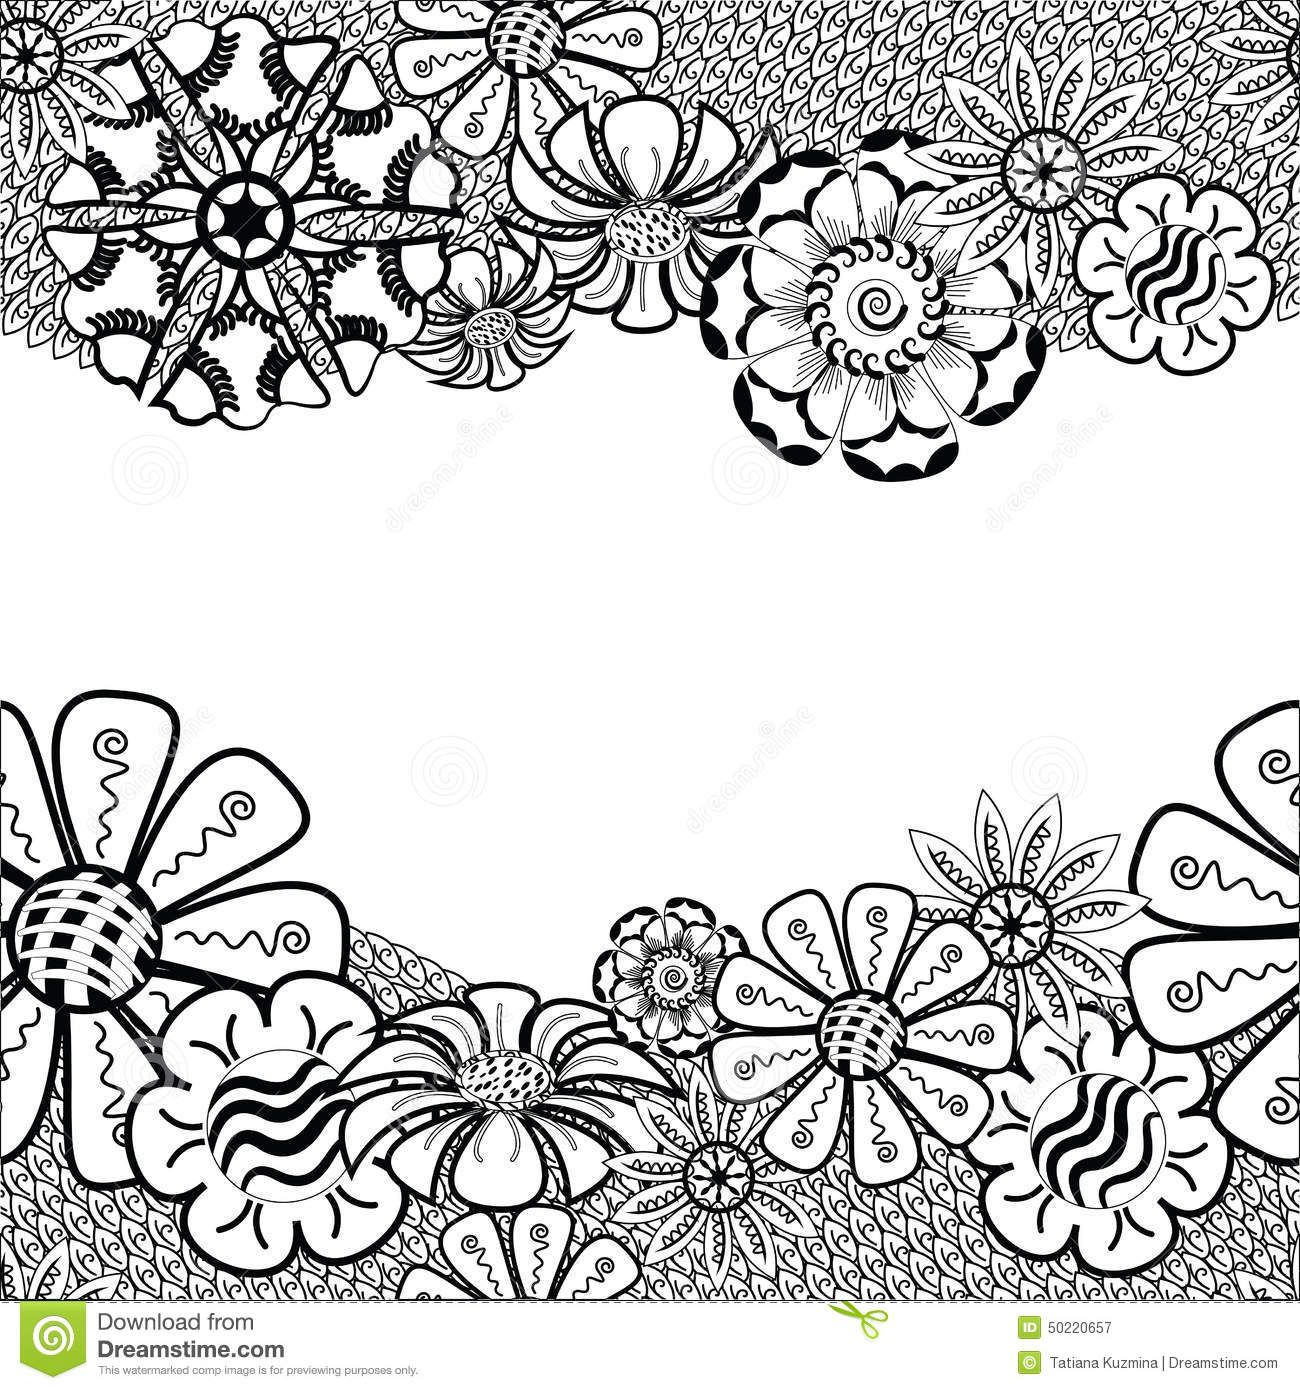 Images For Gt Zentangles Step By Step Flowers